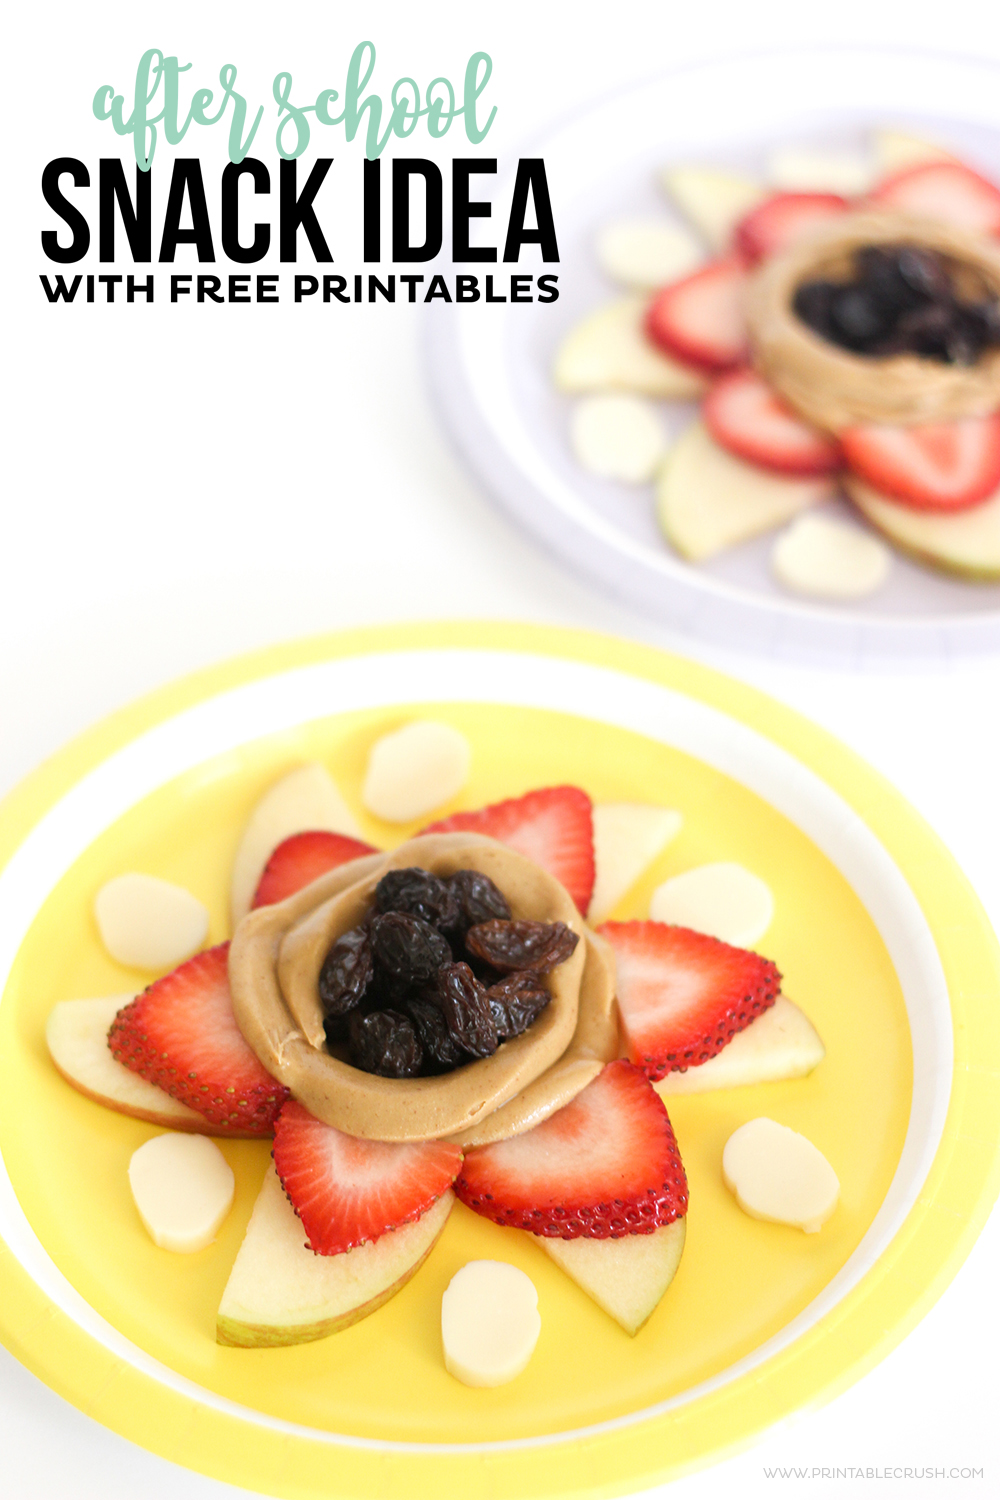 If your kids come home ravenous, they'll love this After School Snack Idea! While they're snacking have them fill out a fun FREE Printable for memory keeping.